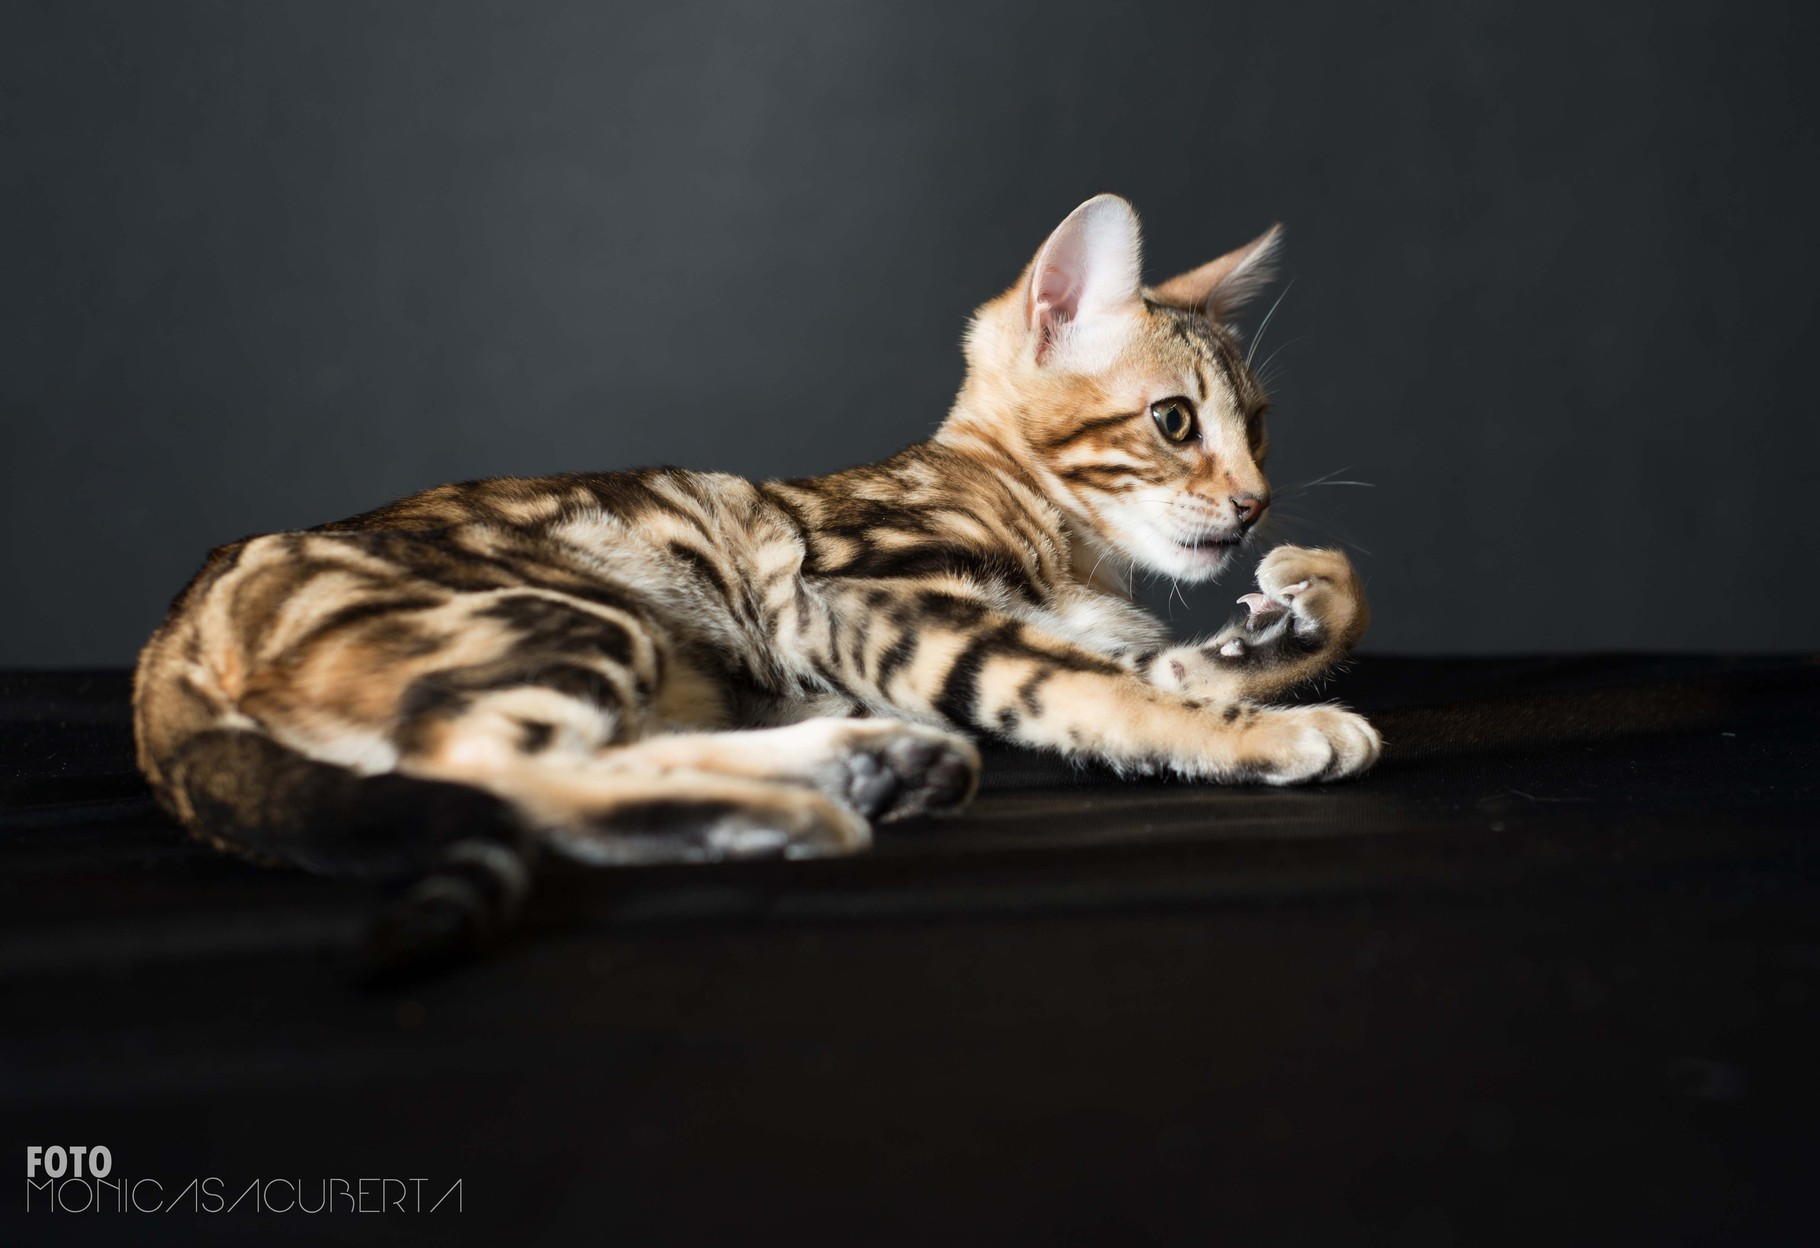 Manekineko juliette has a gun bengal female 4 months